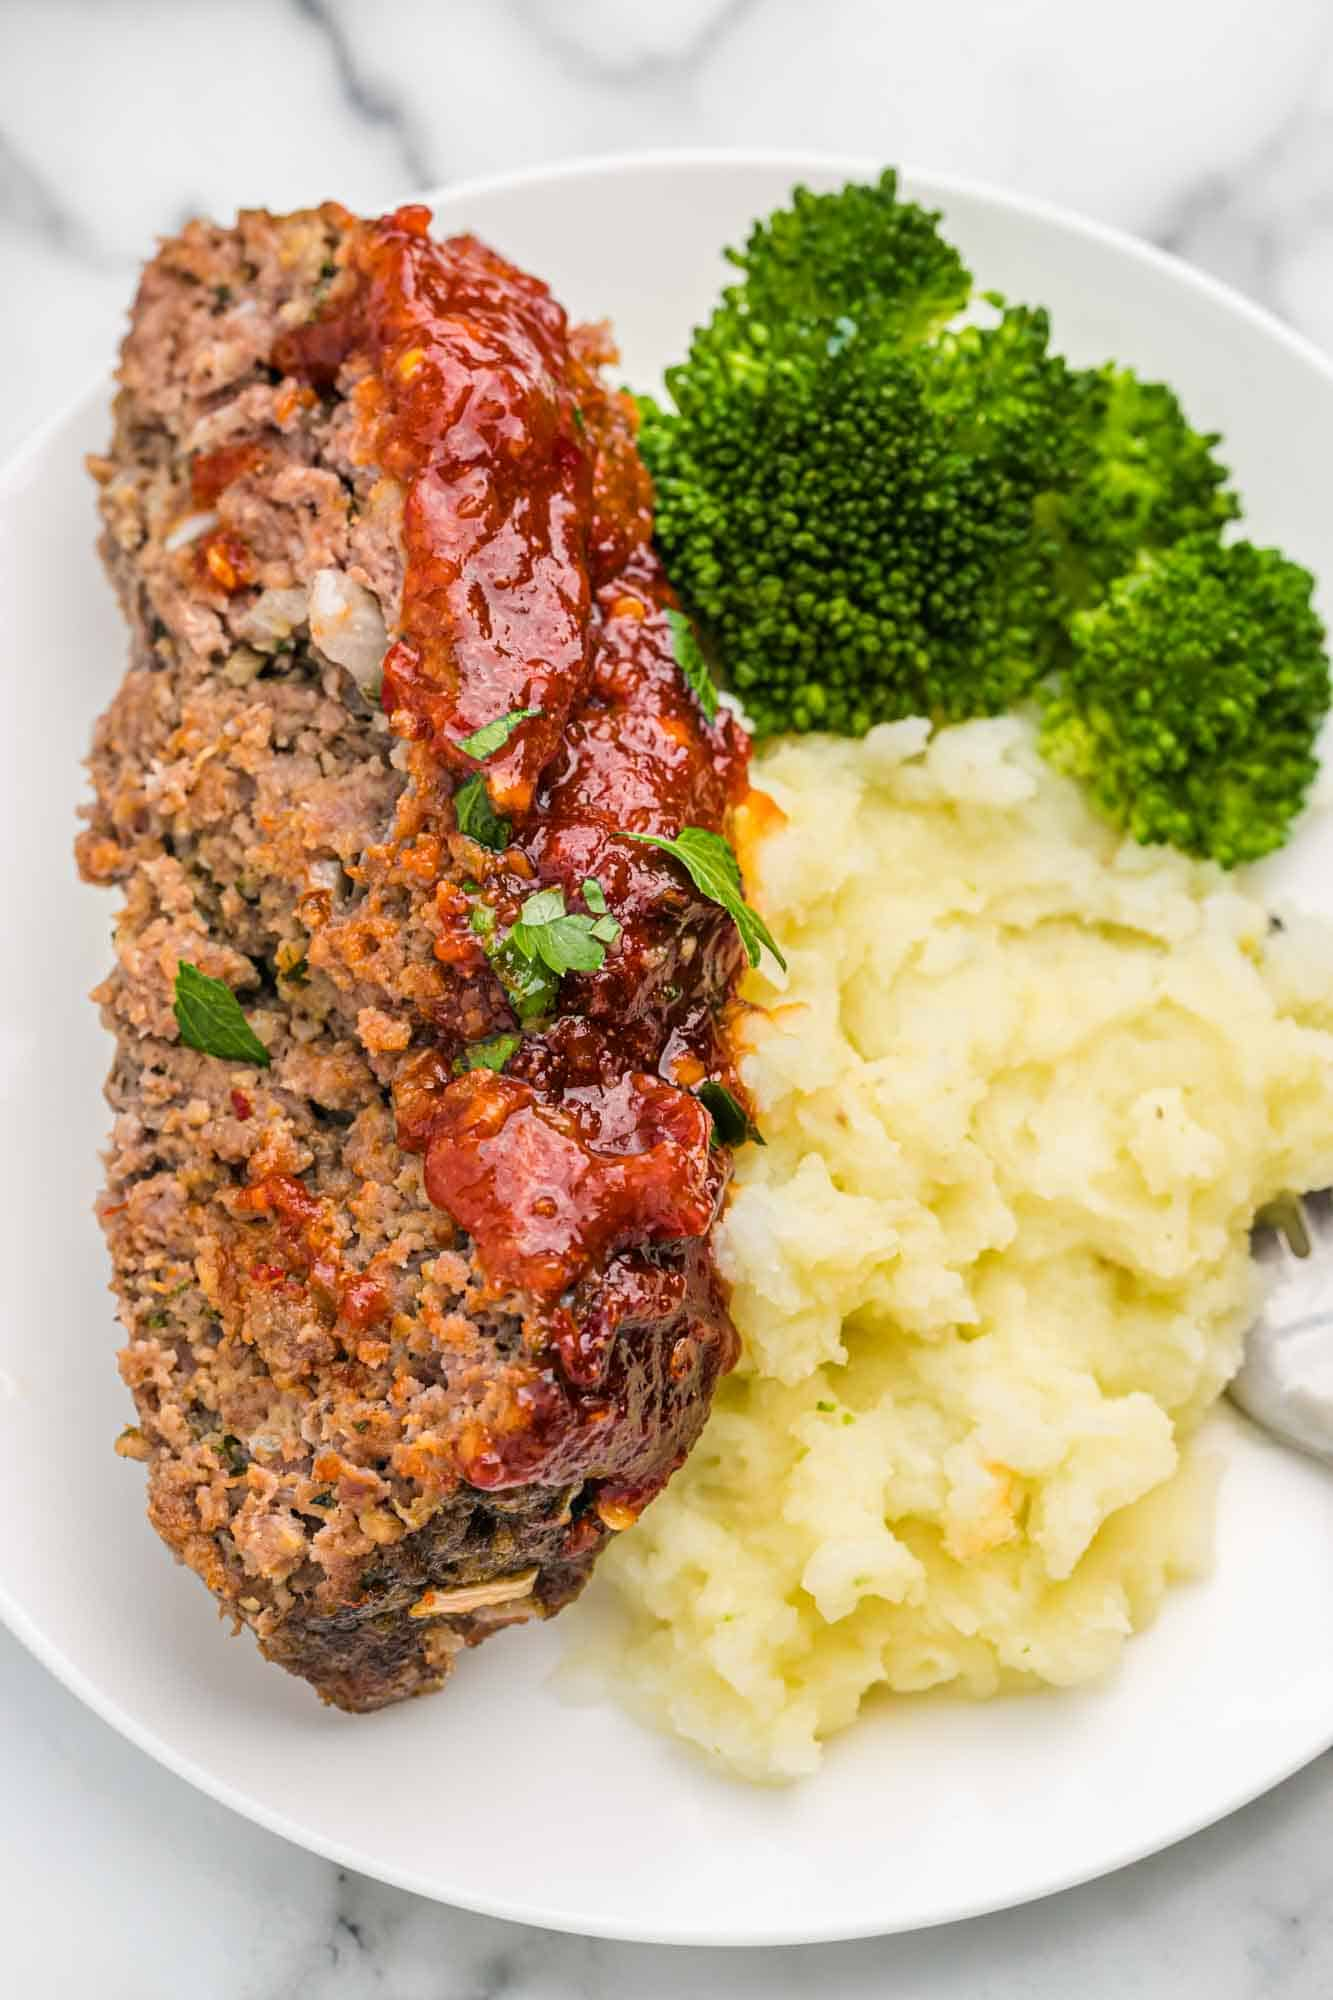 Slice of meatloaf served on a white plate with mashed potatoes and steamed broccoli